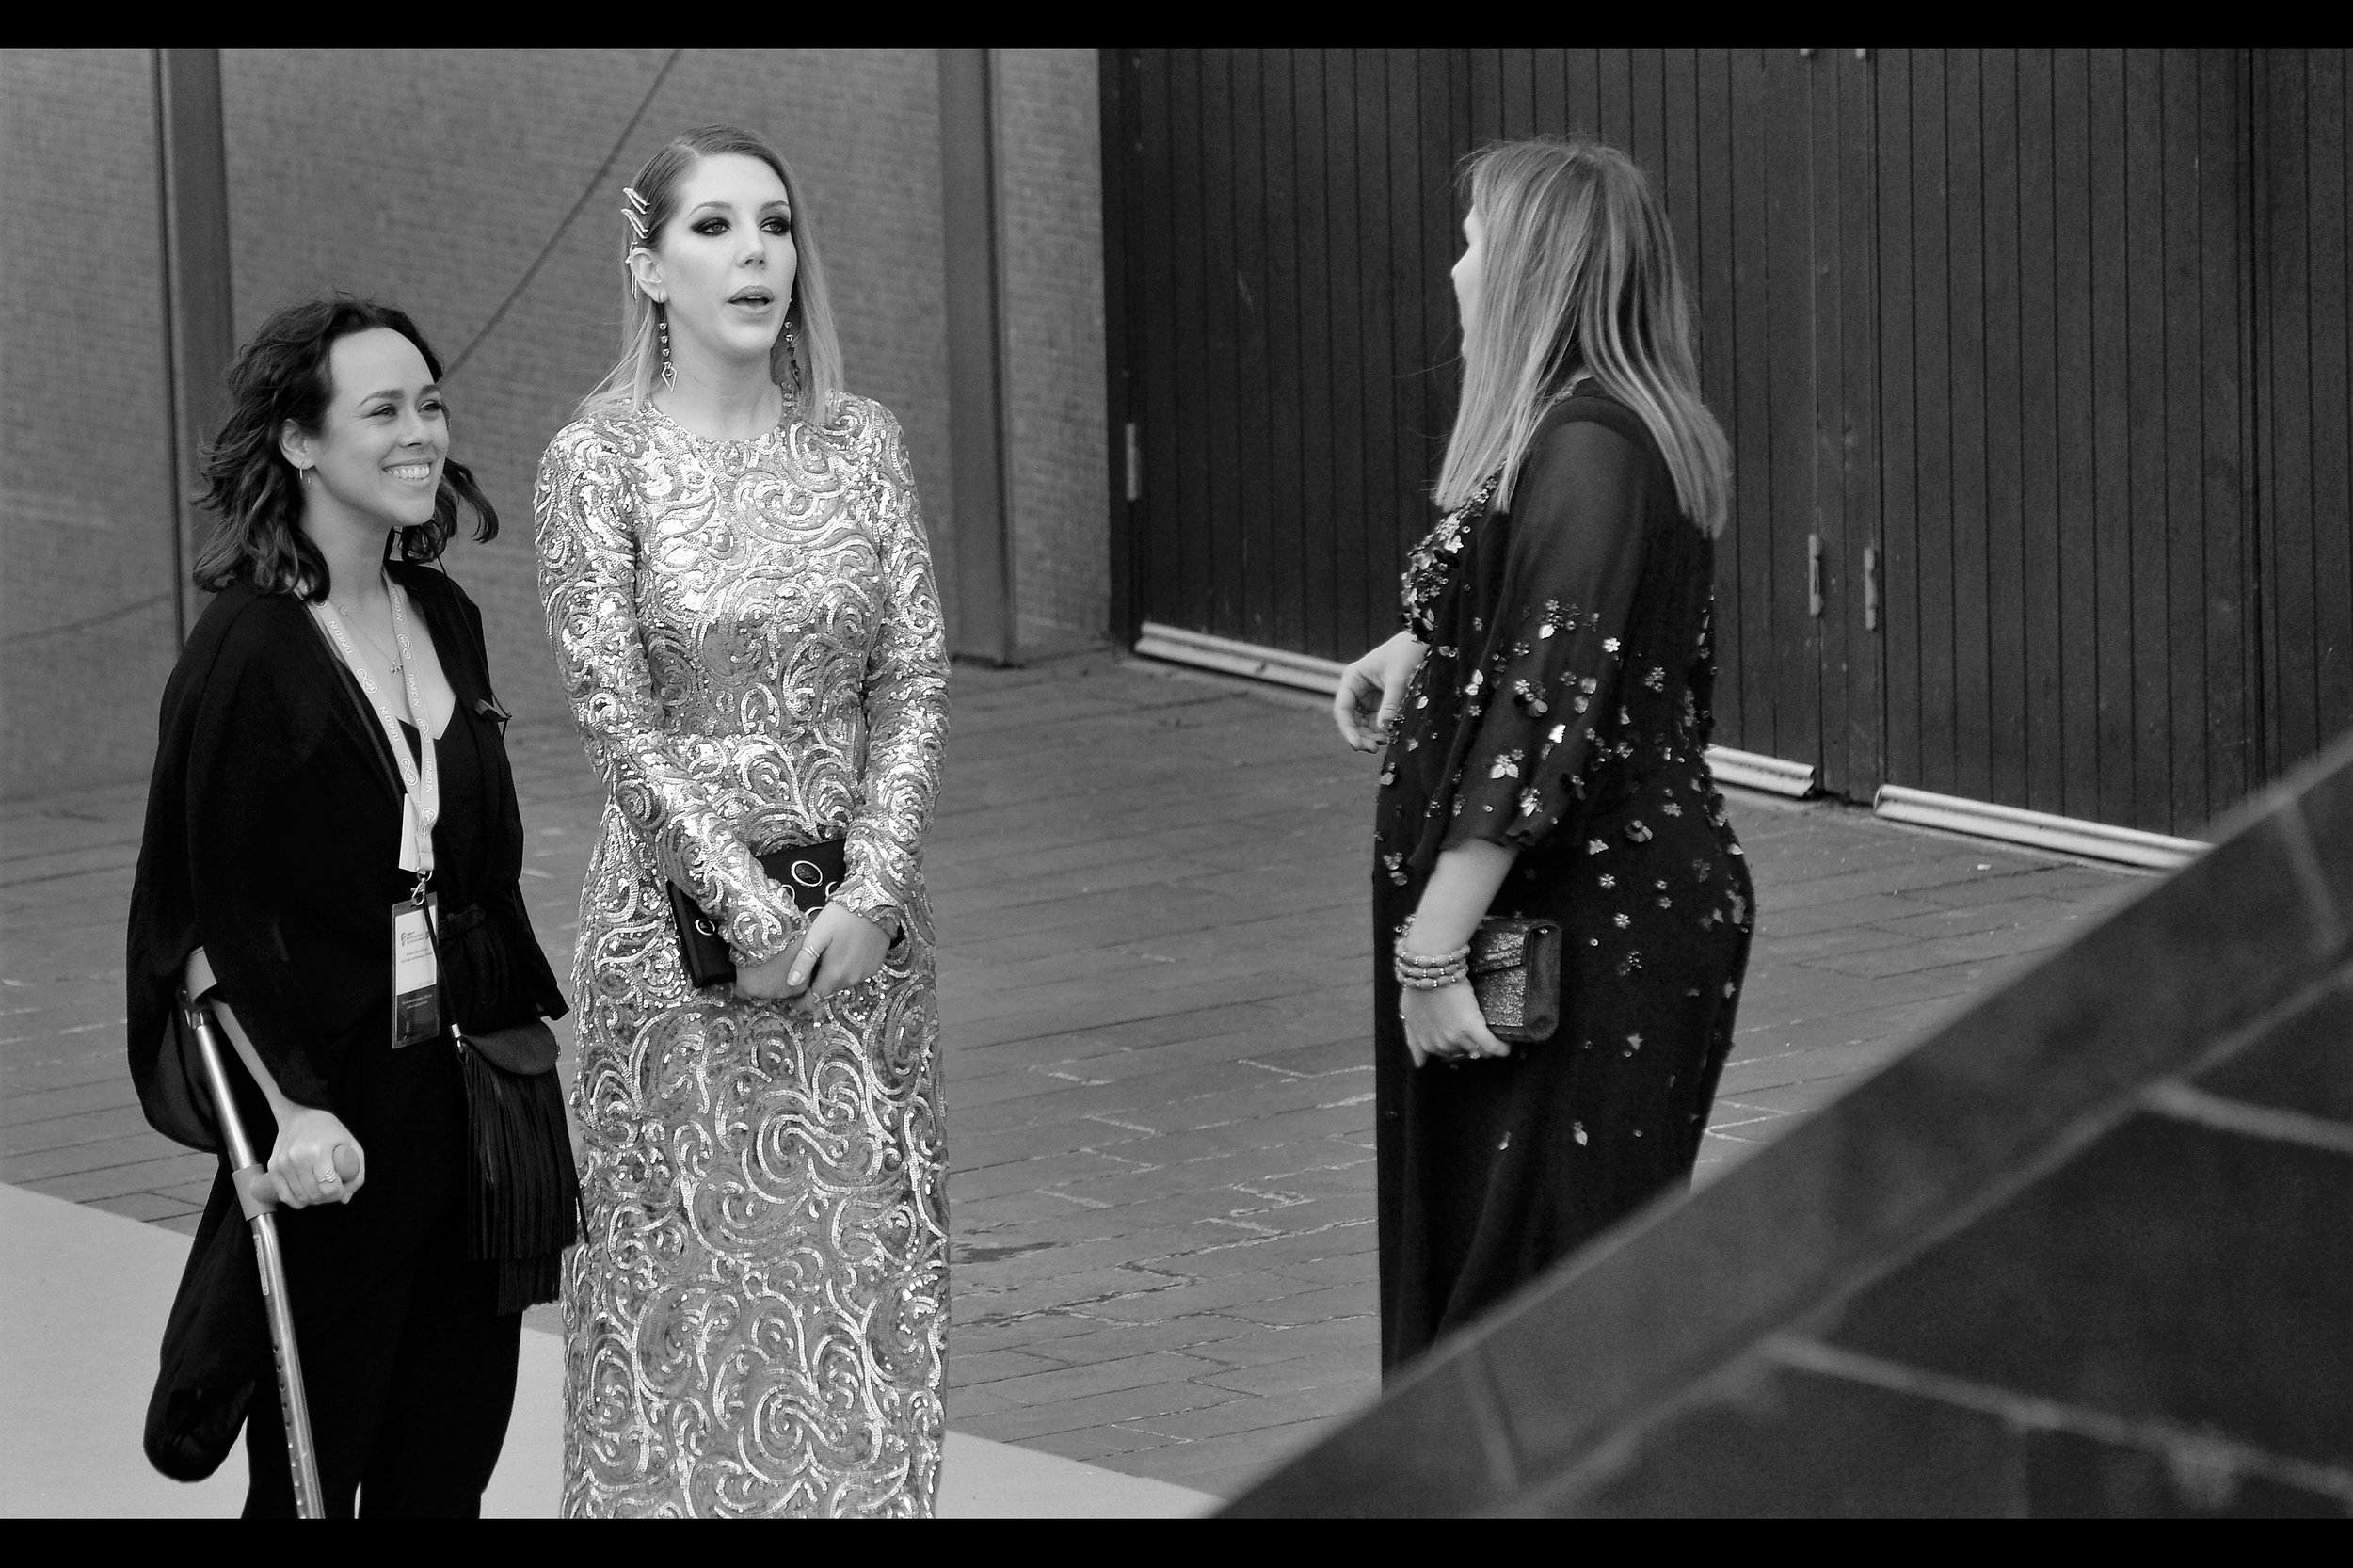 I actually do know of Katherine Ryan - she was in a televised debate I watched over New Years in Australia a few years back (true - if rather uninteresting - story). Her dress looks more like something that was wrought by an ironsmith than sewn.